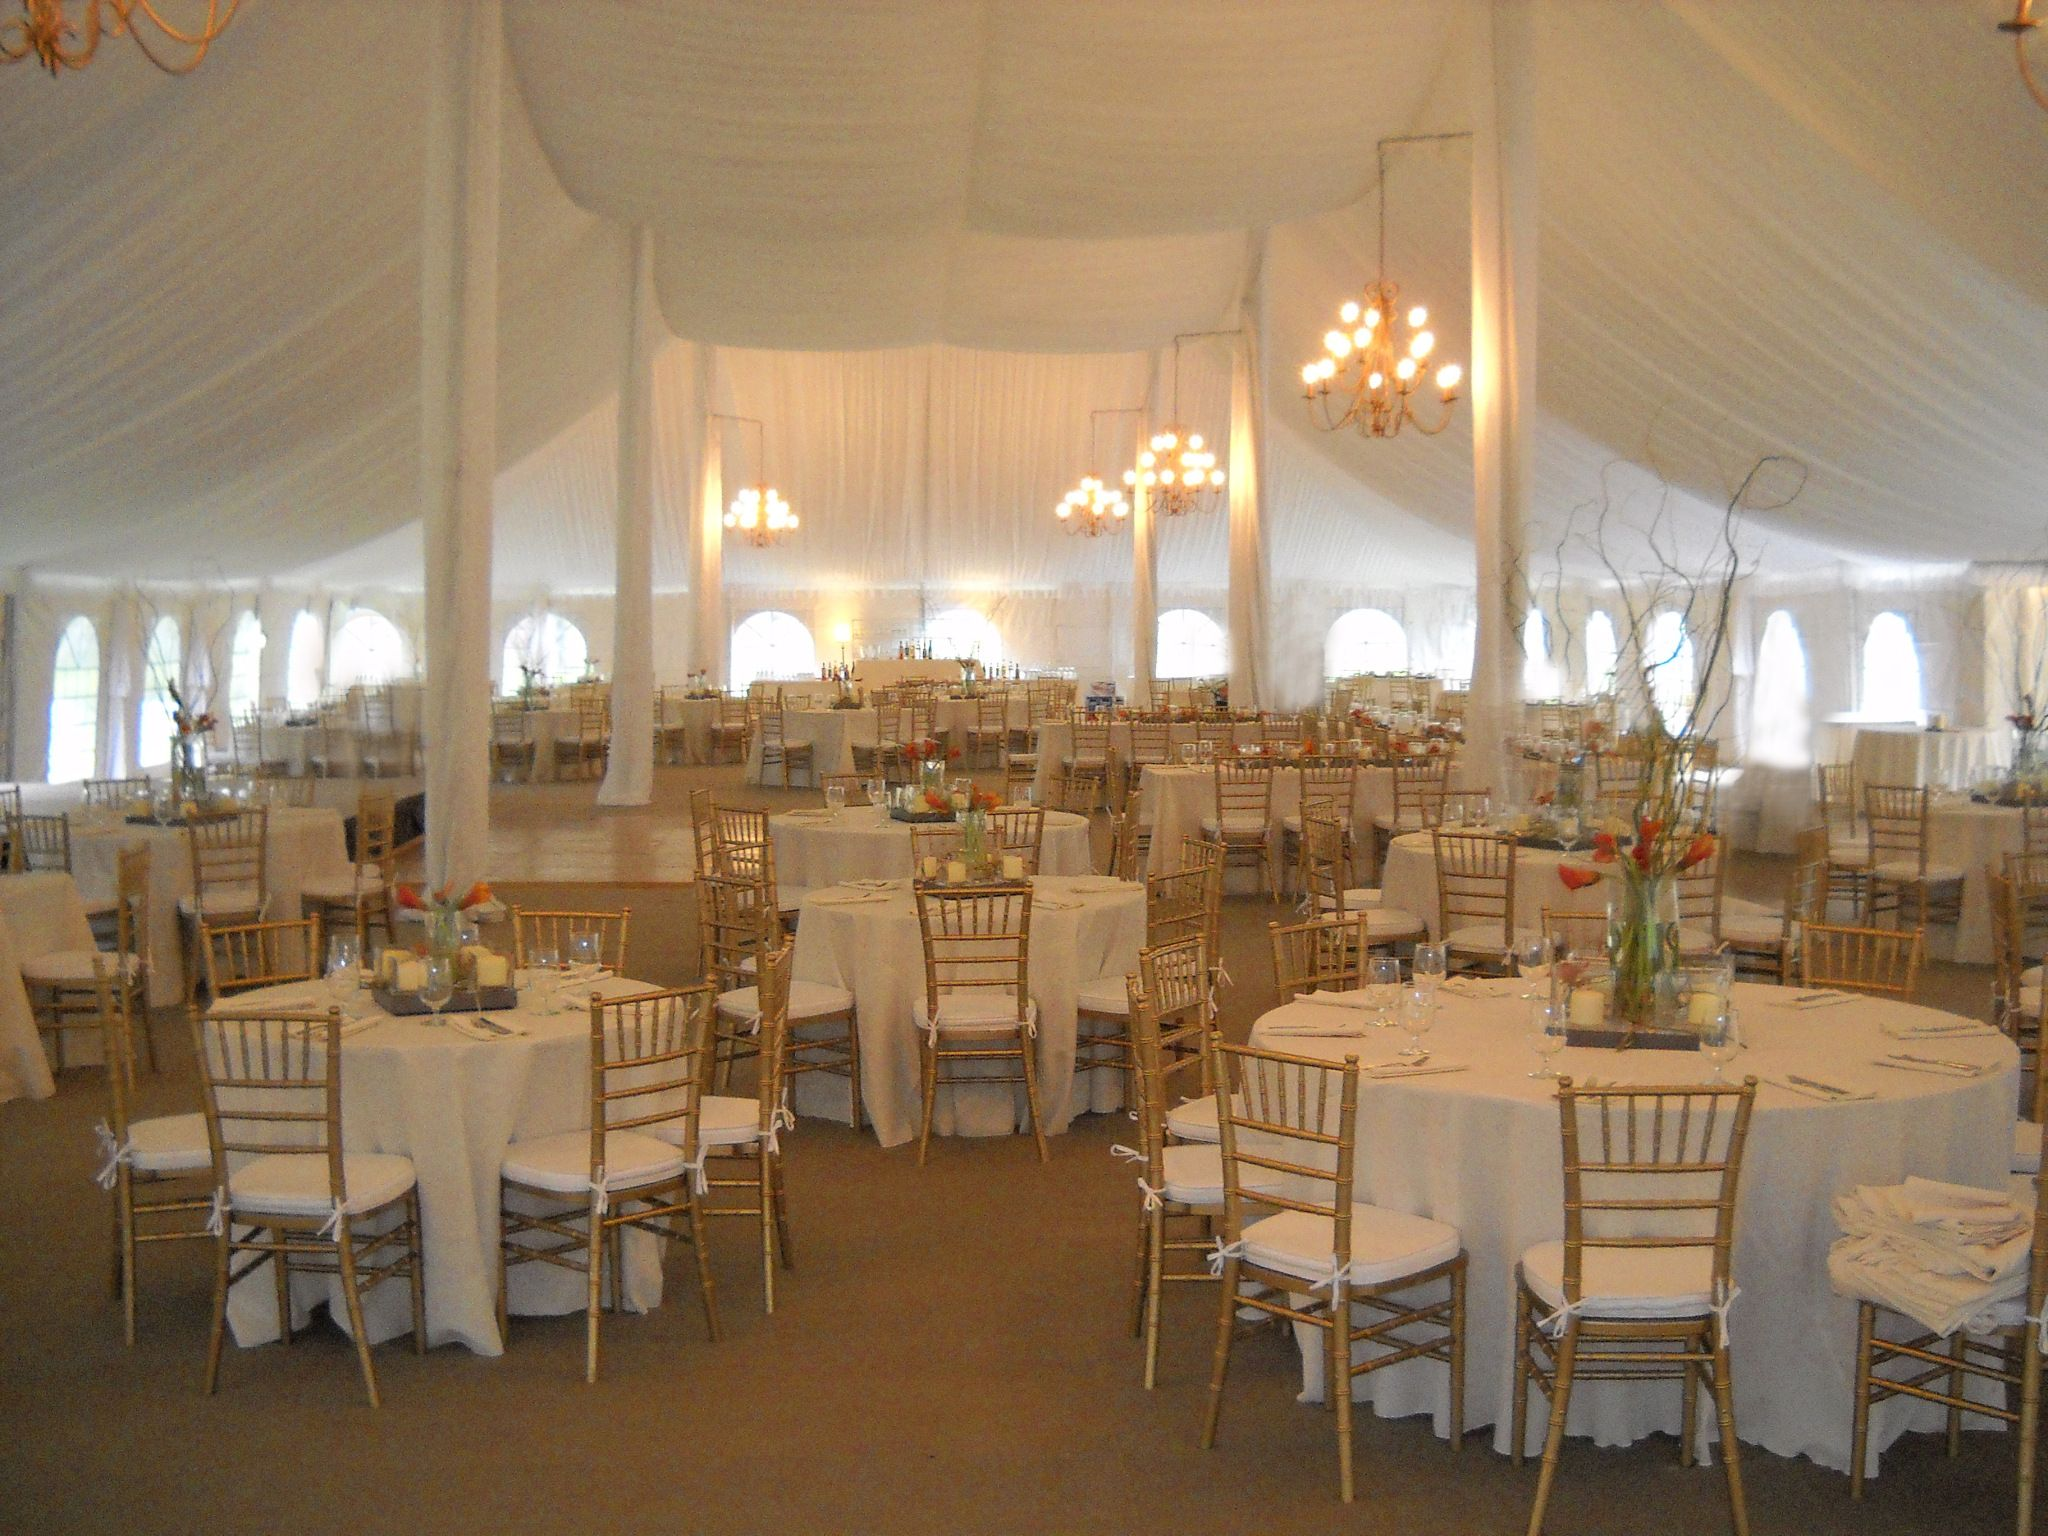 Chair Cover Rentals Memphis Plus Size Folding Lawn Chairs Fancy Wedding Linen Table For Weddings Home